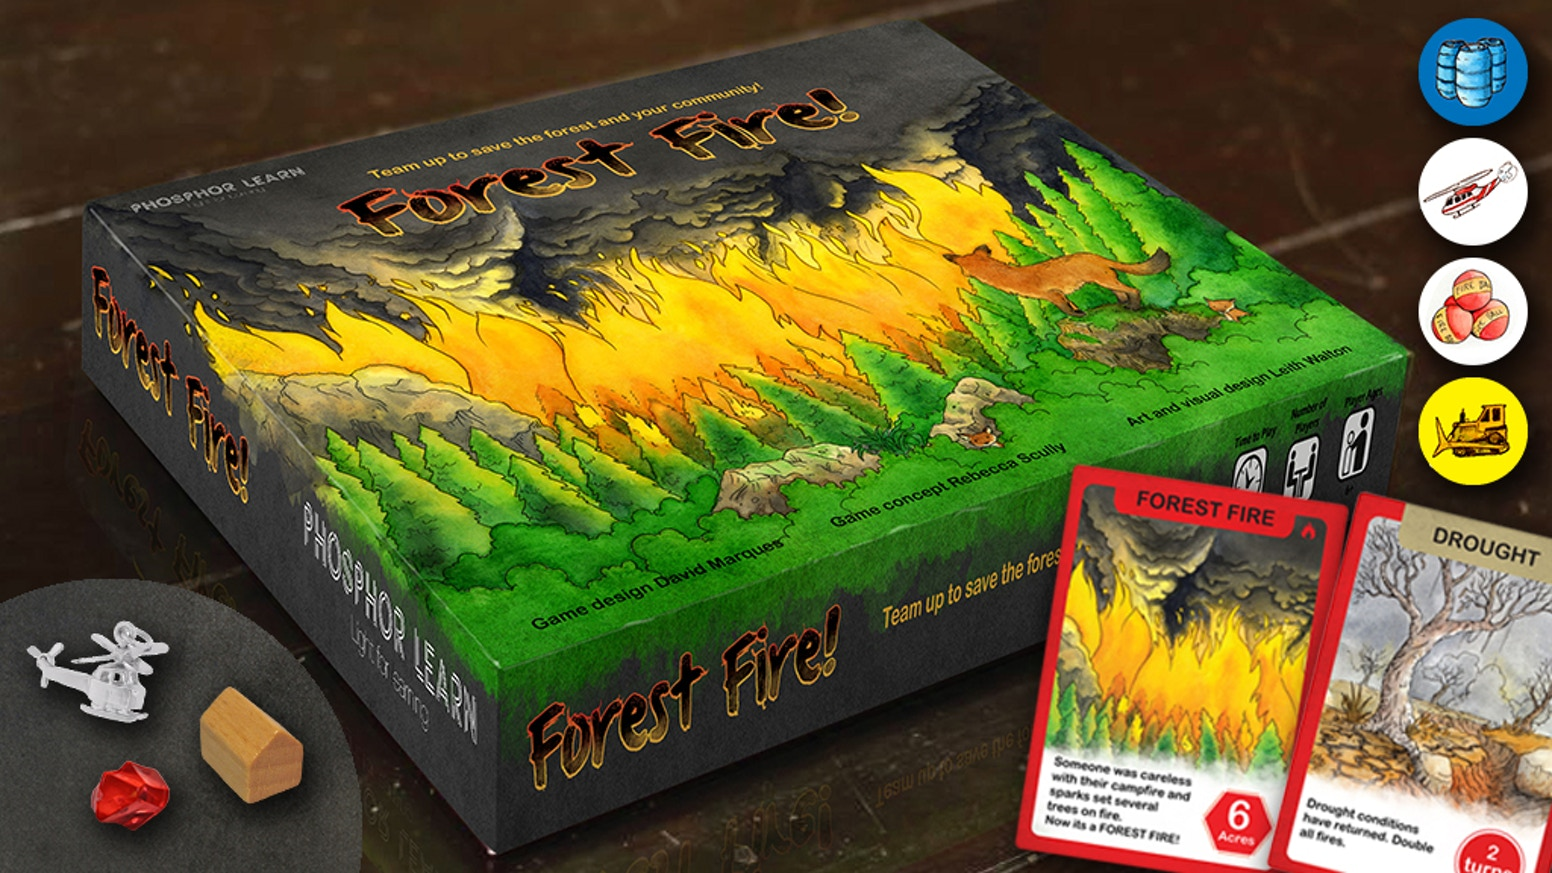 Funded! A cooperative family game for 1-5 players ages 8+ fighting forest fires, saving homes, schools. Wind, drought, bulldozers, helicopters.